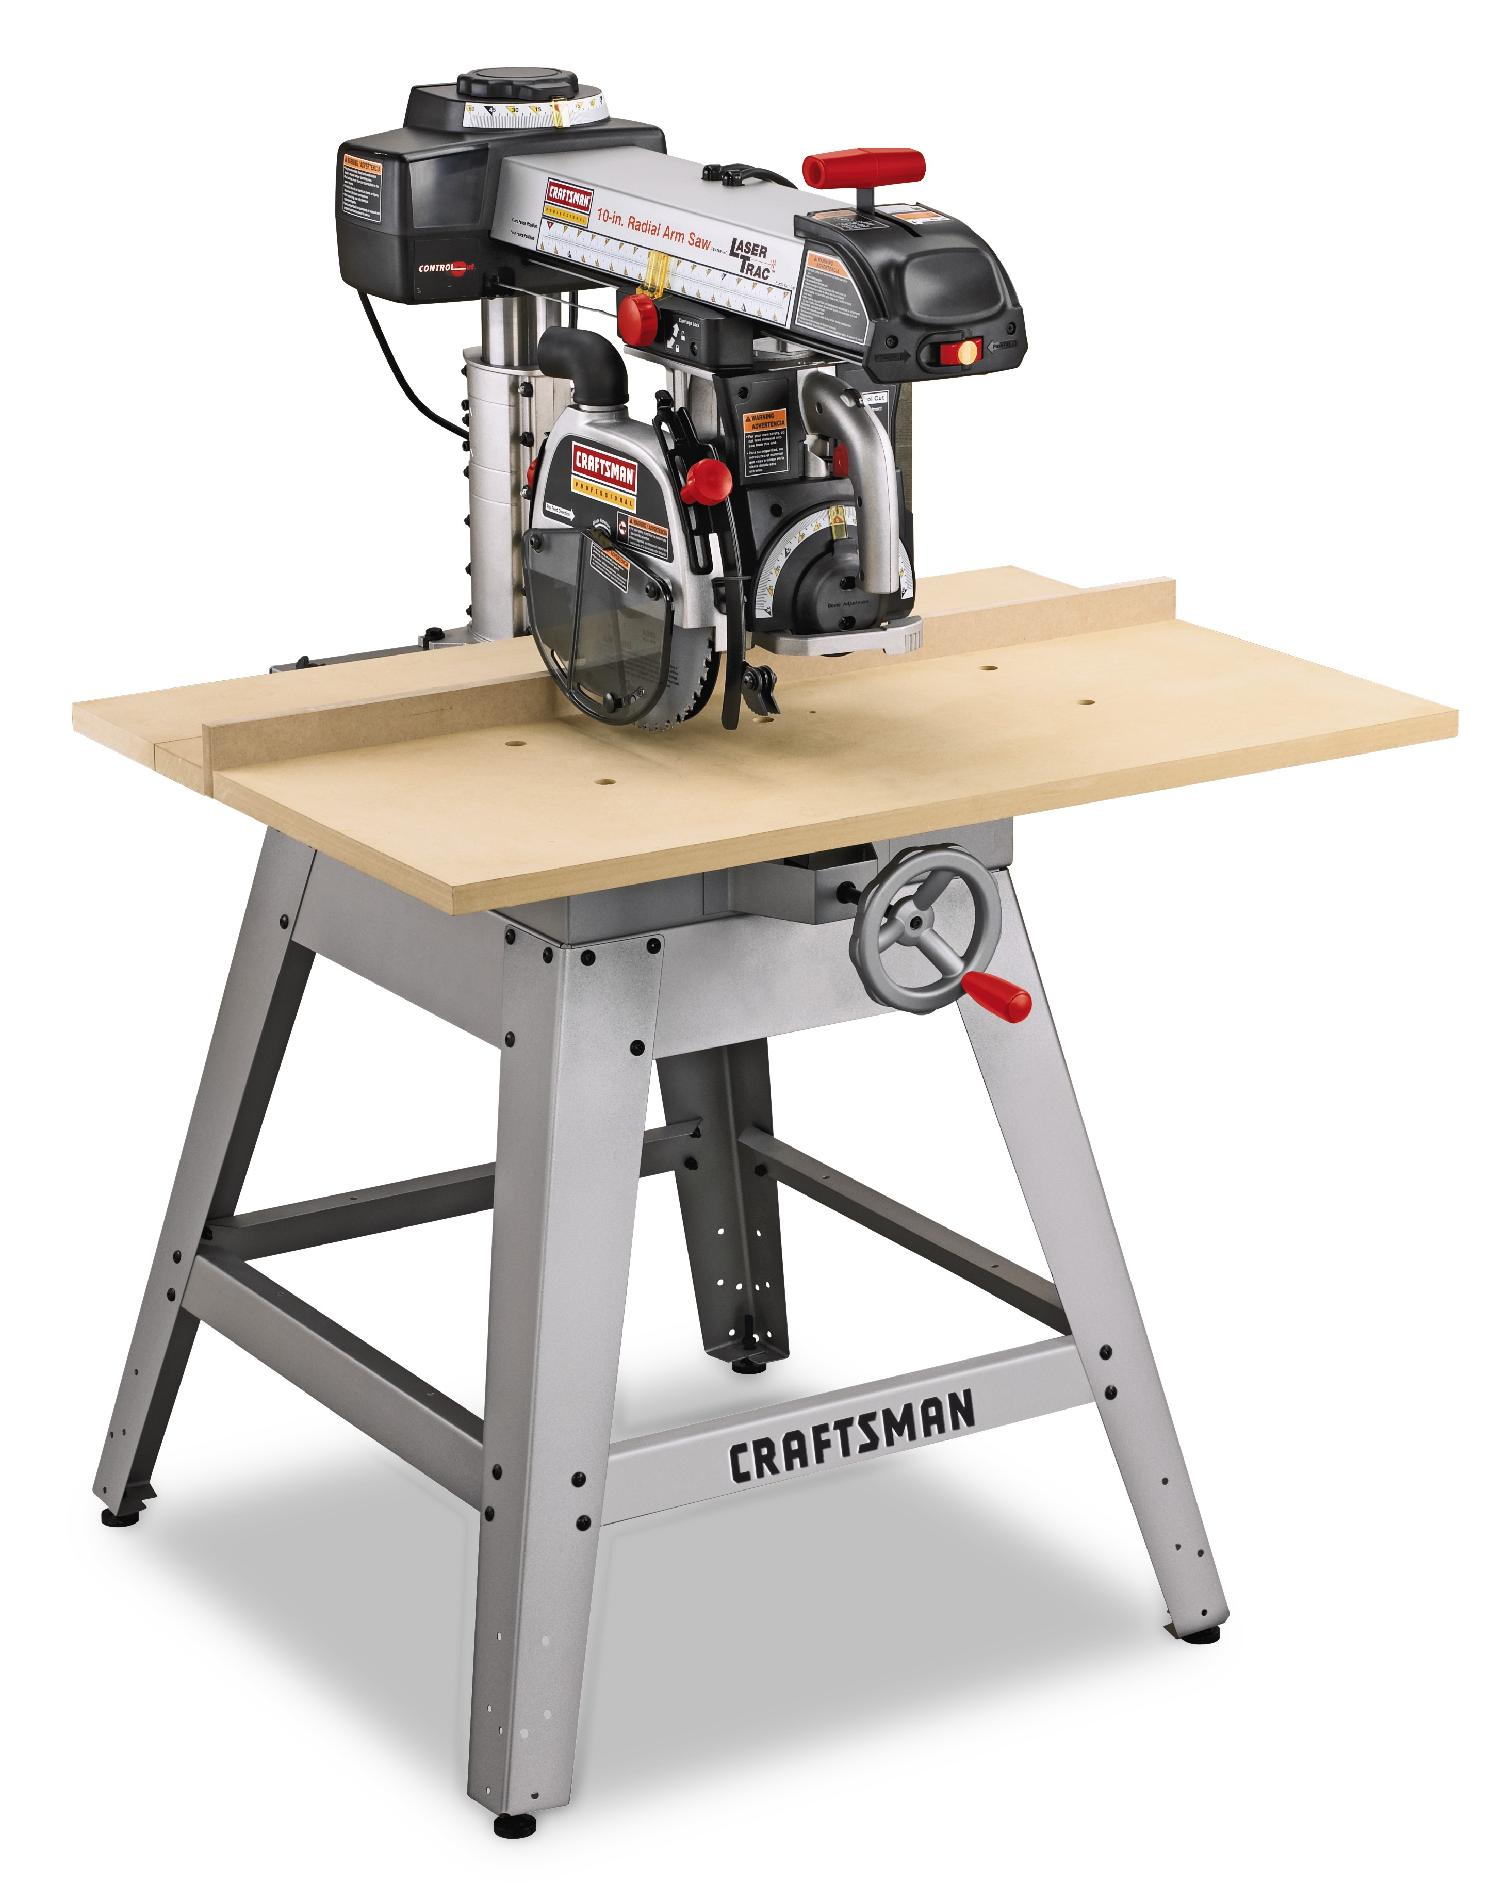 Craftsman Bench Saw